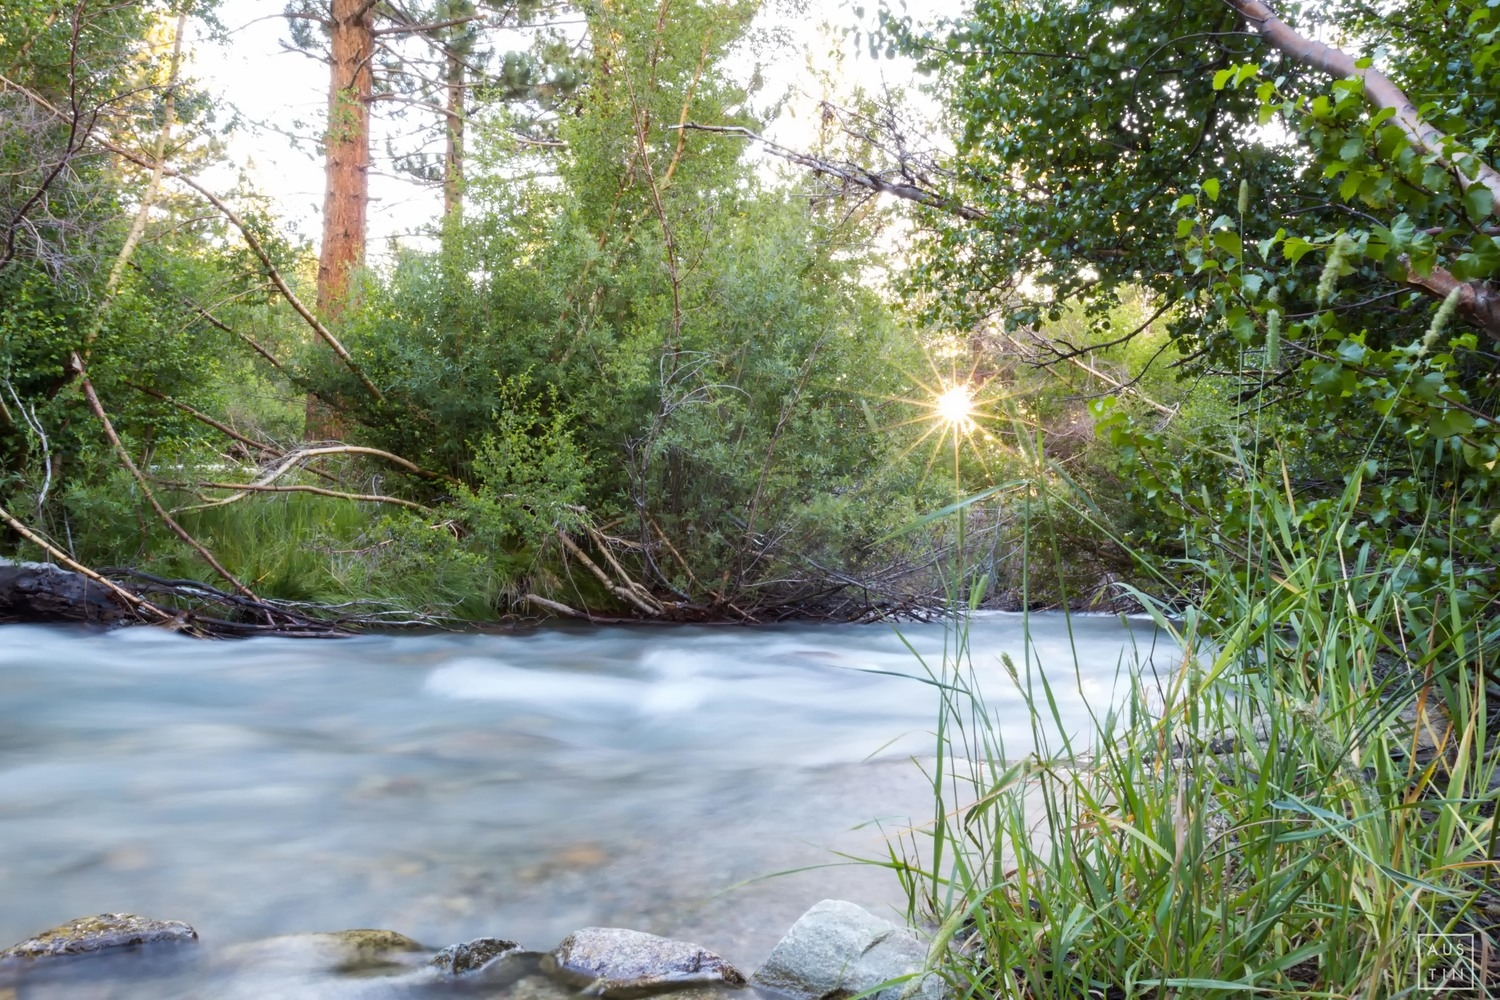 Big Pine Creek flowing right by camp site #19